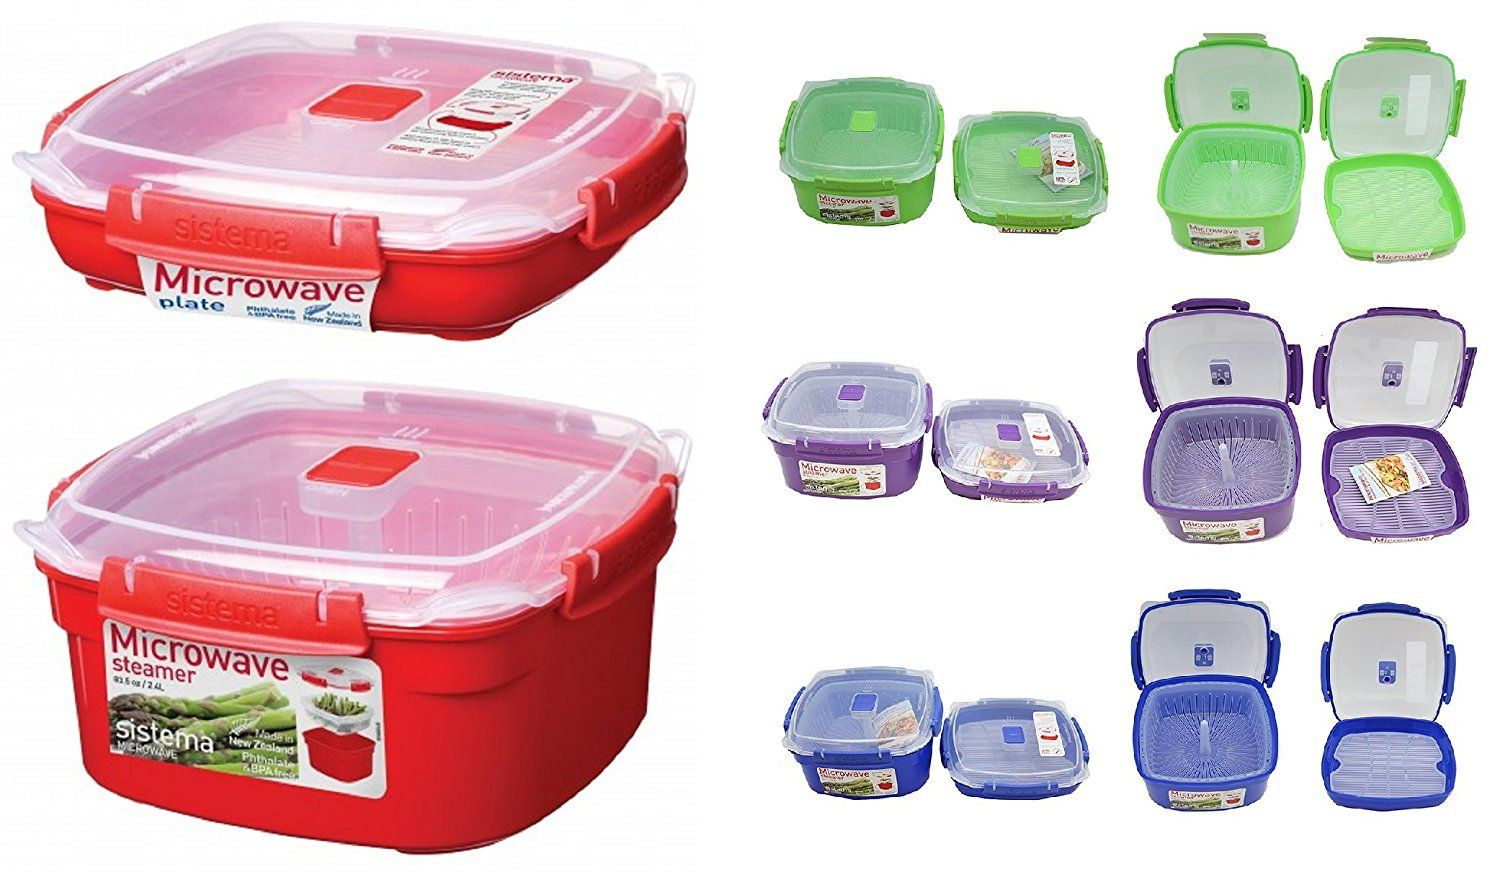 Sistema 2 Piece Medium Microwave Steamer and Plate Set with a Starter Recipe Guide for 15 Amazing Steamer Meals - Assorted Colors *** Learn more by visiting the image link.